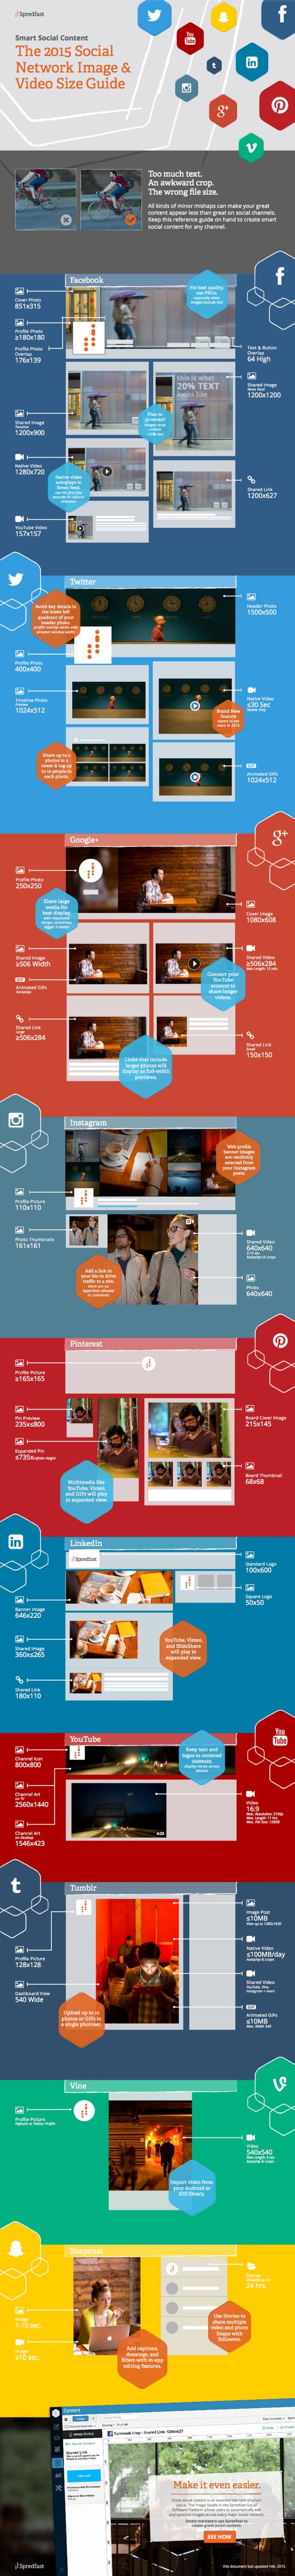 Social Image Size Infographic